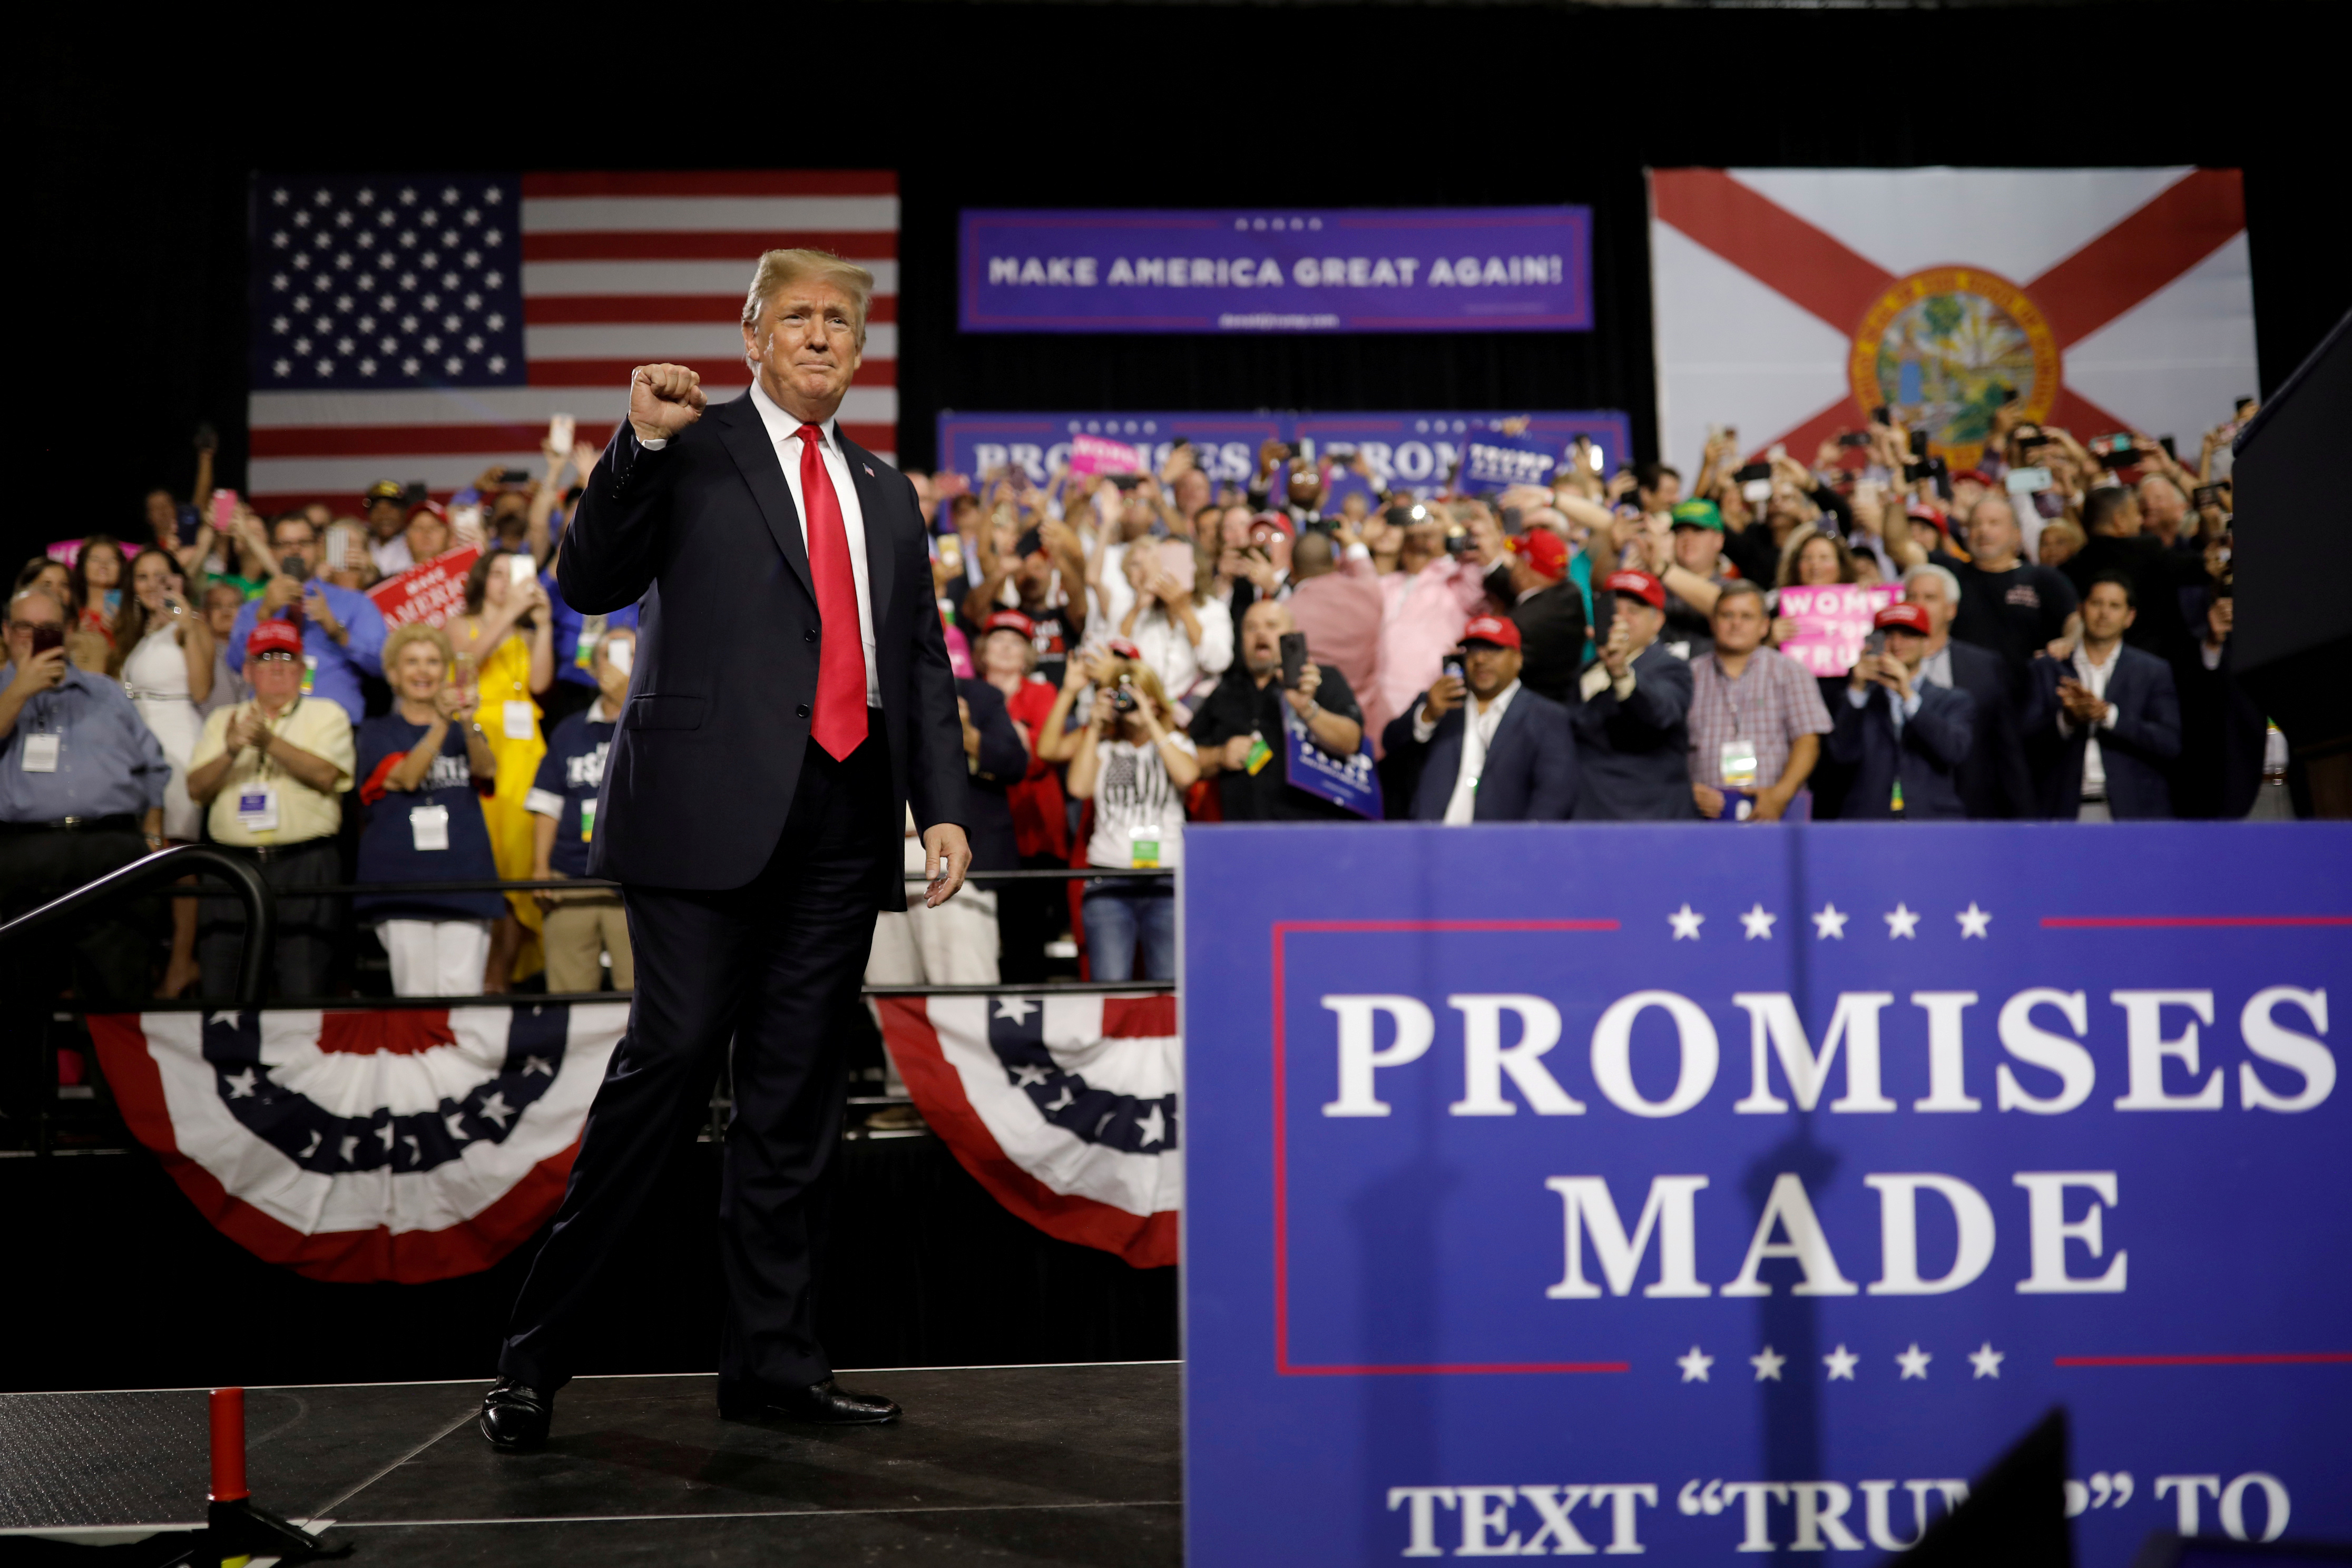 As QAnon Goes Mainstream, Trump's Rallies Are Turning Darker